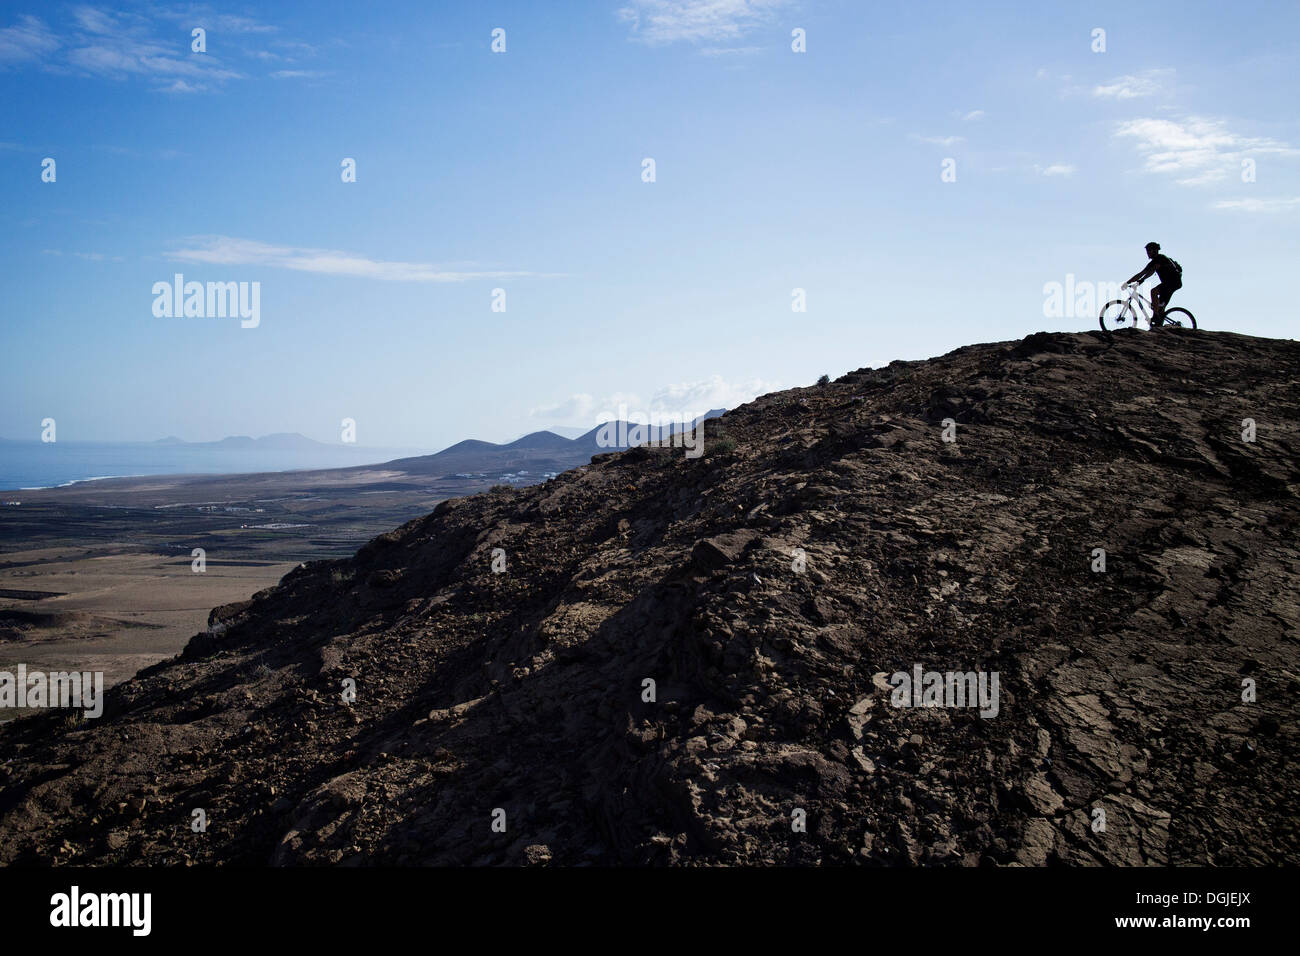 Man mountain biking, Pica del Cuchillo, Lanzarote Photo Stock